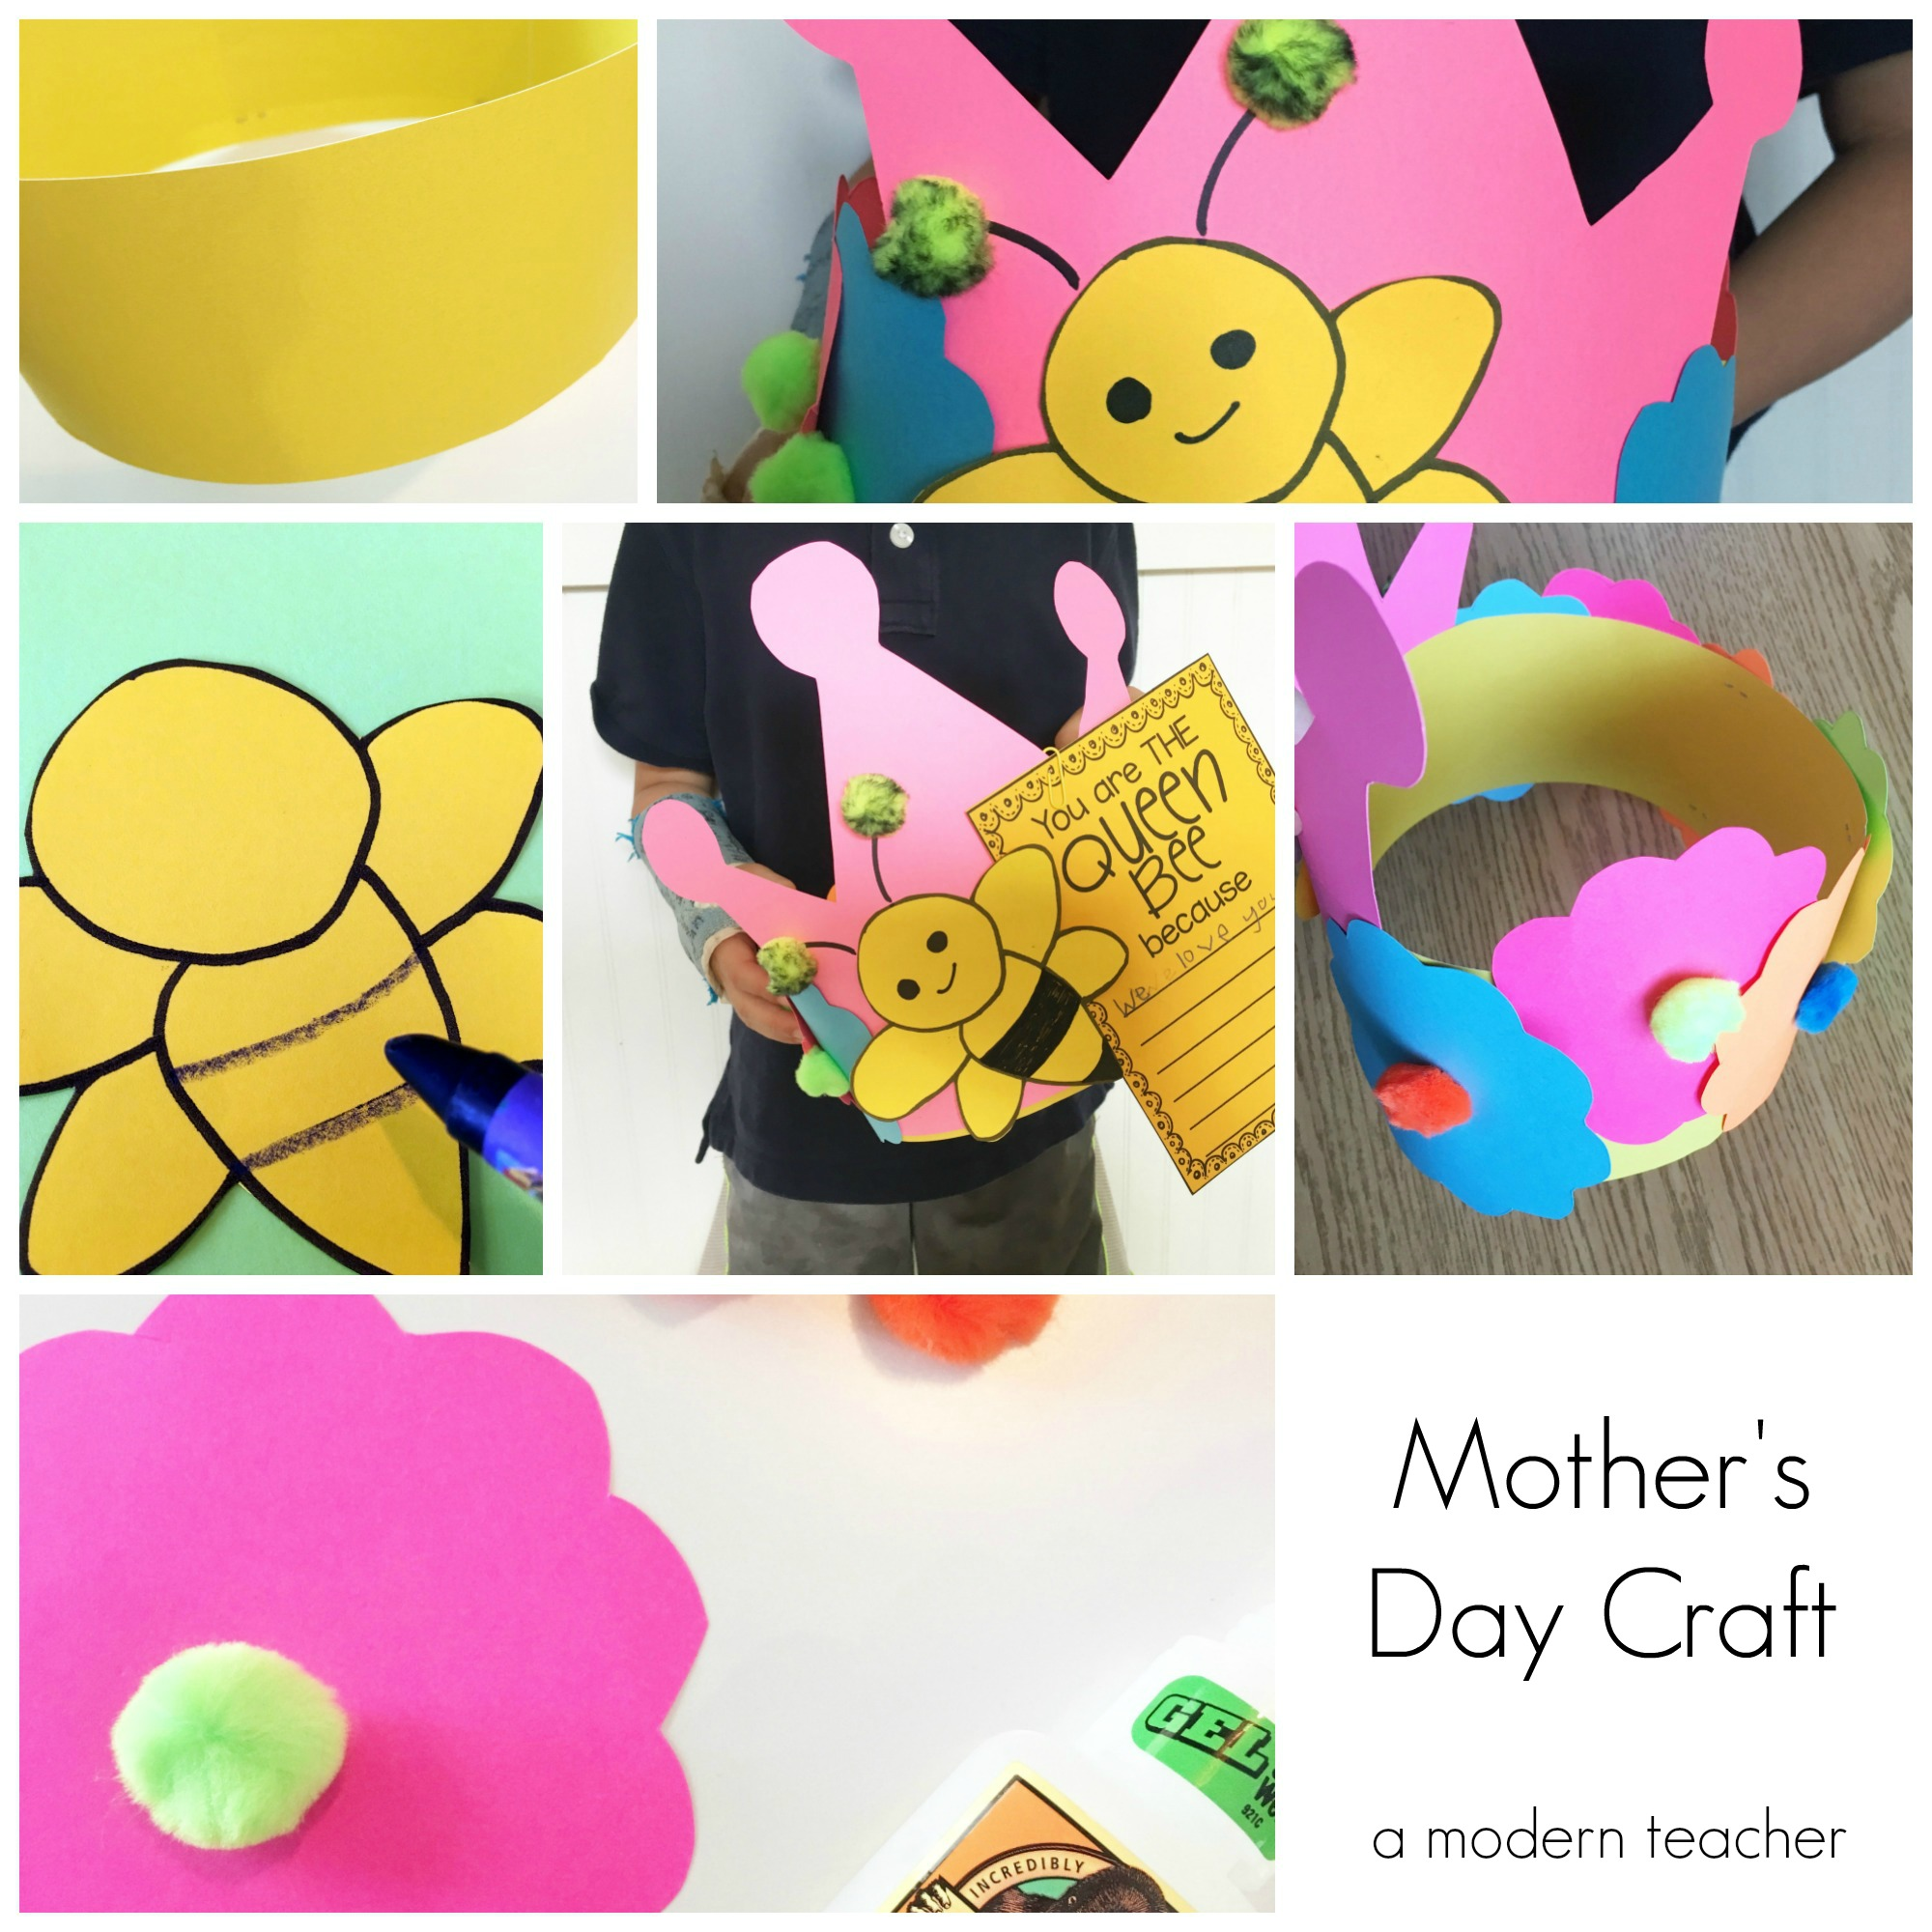 Mother's Day Craft  :: She is THE Queen Bee